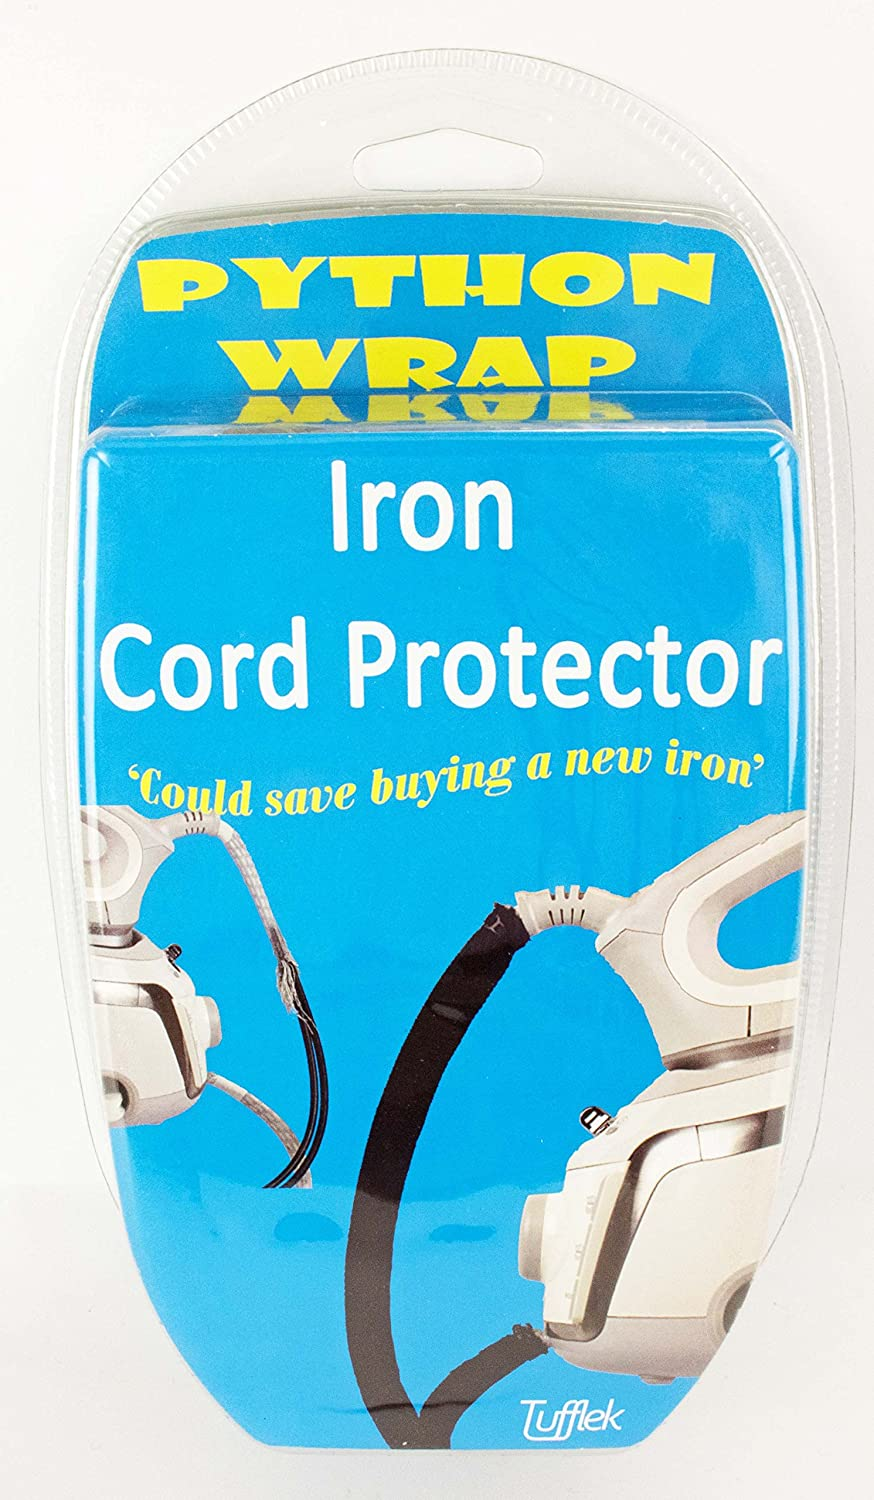 Python Wrap Iron Cord Protector by Tufflek: Amazon.co.uk: Kitchen & Home